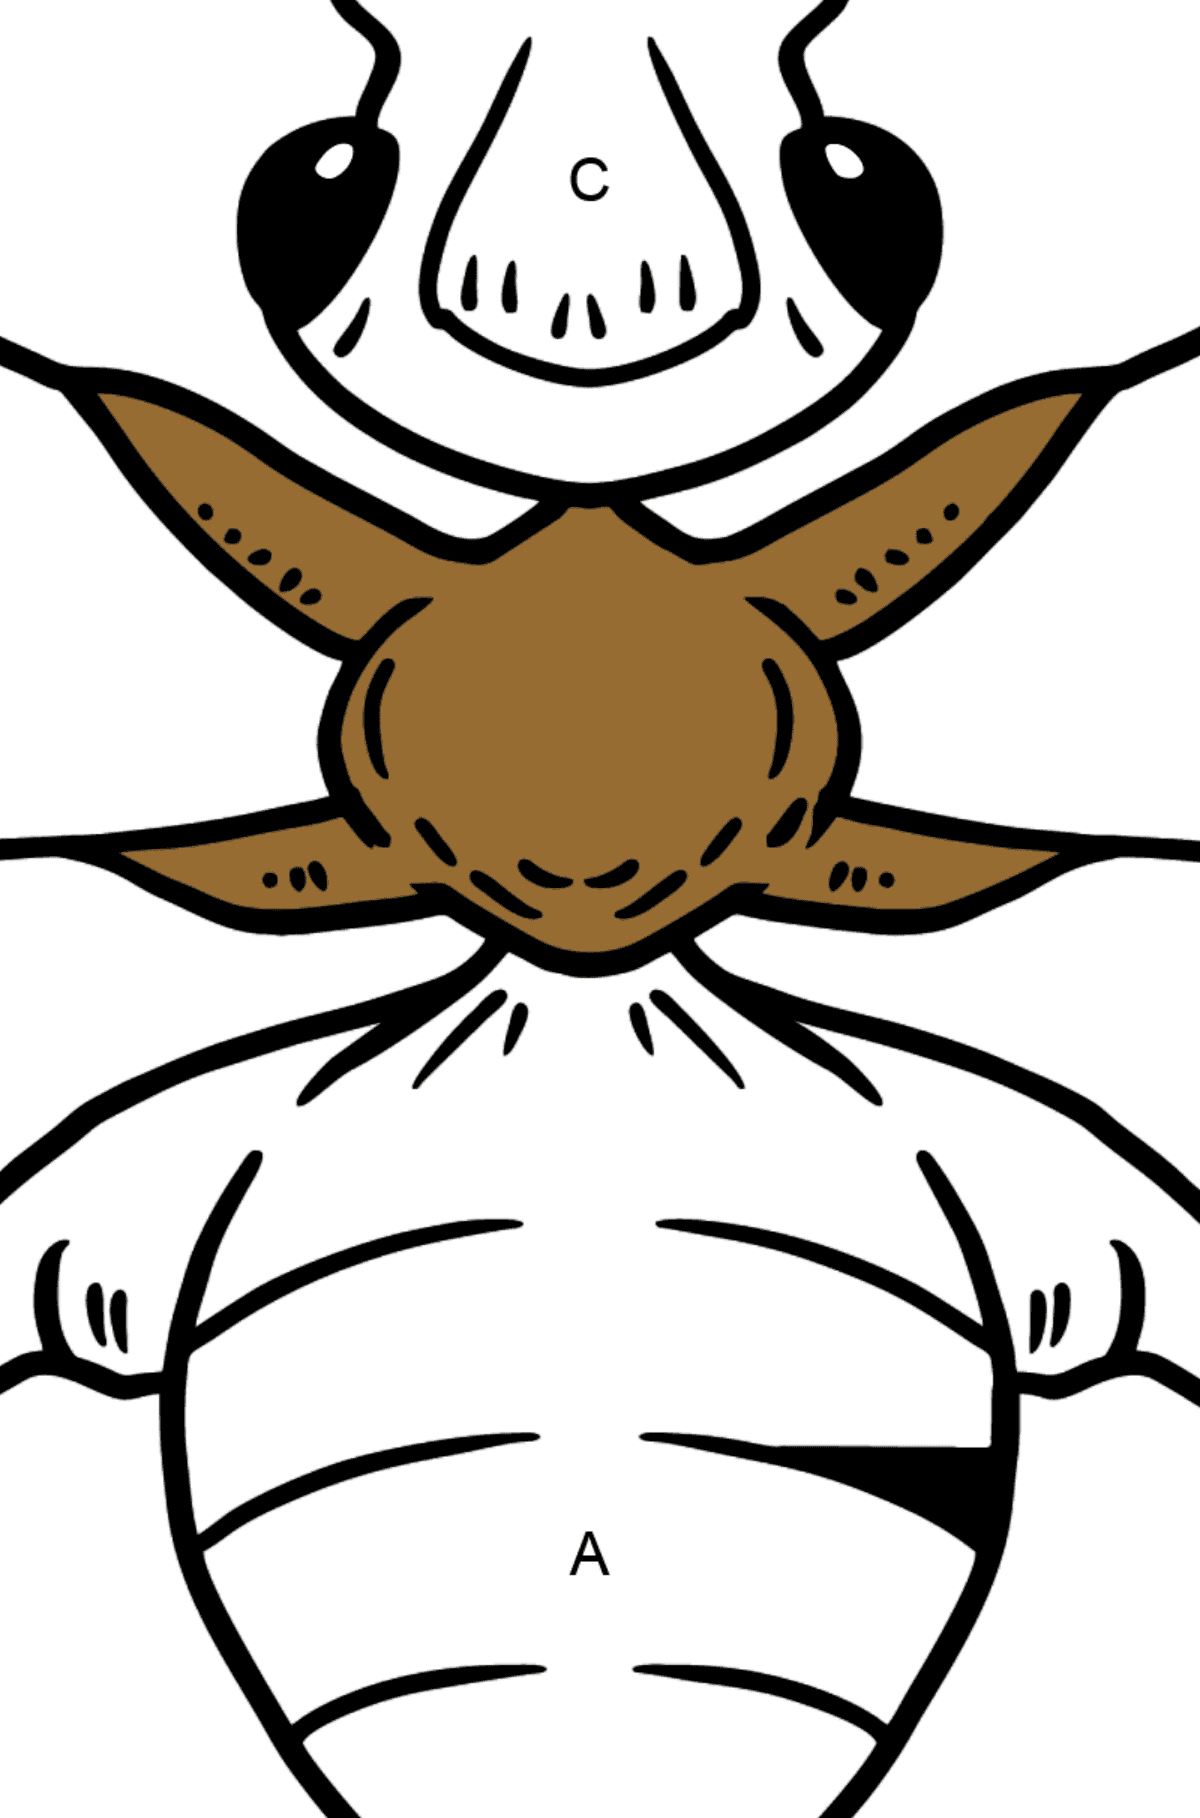 Ant coloring page - Coloring by Letters for Kids